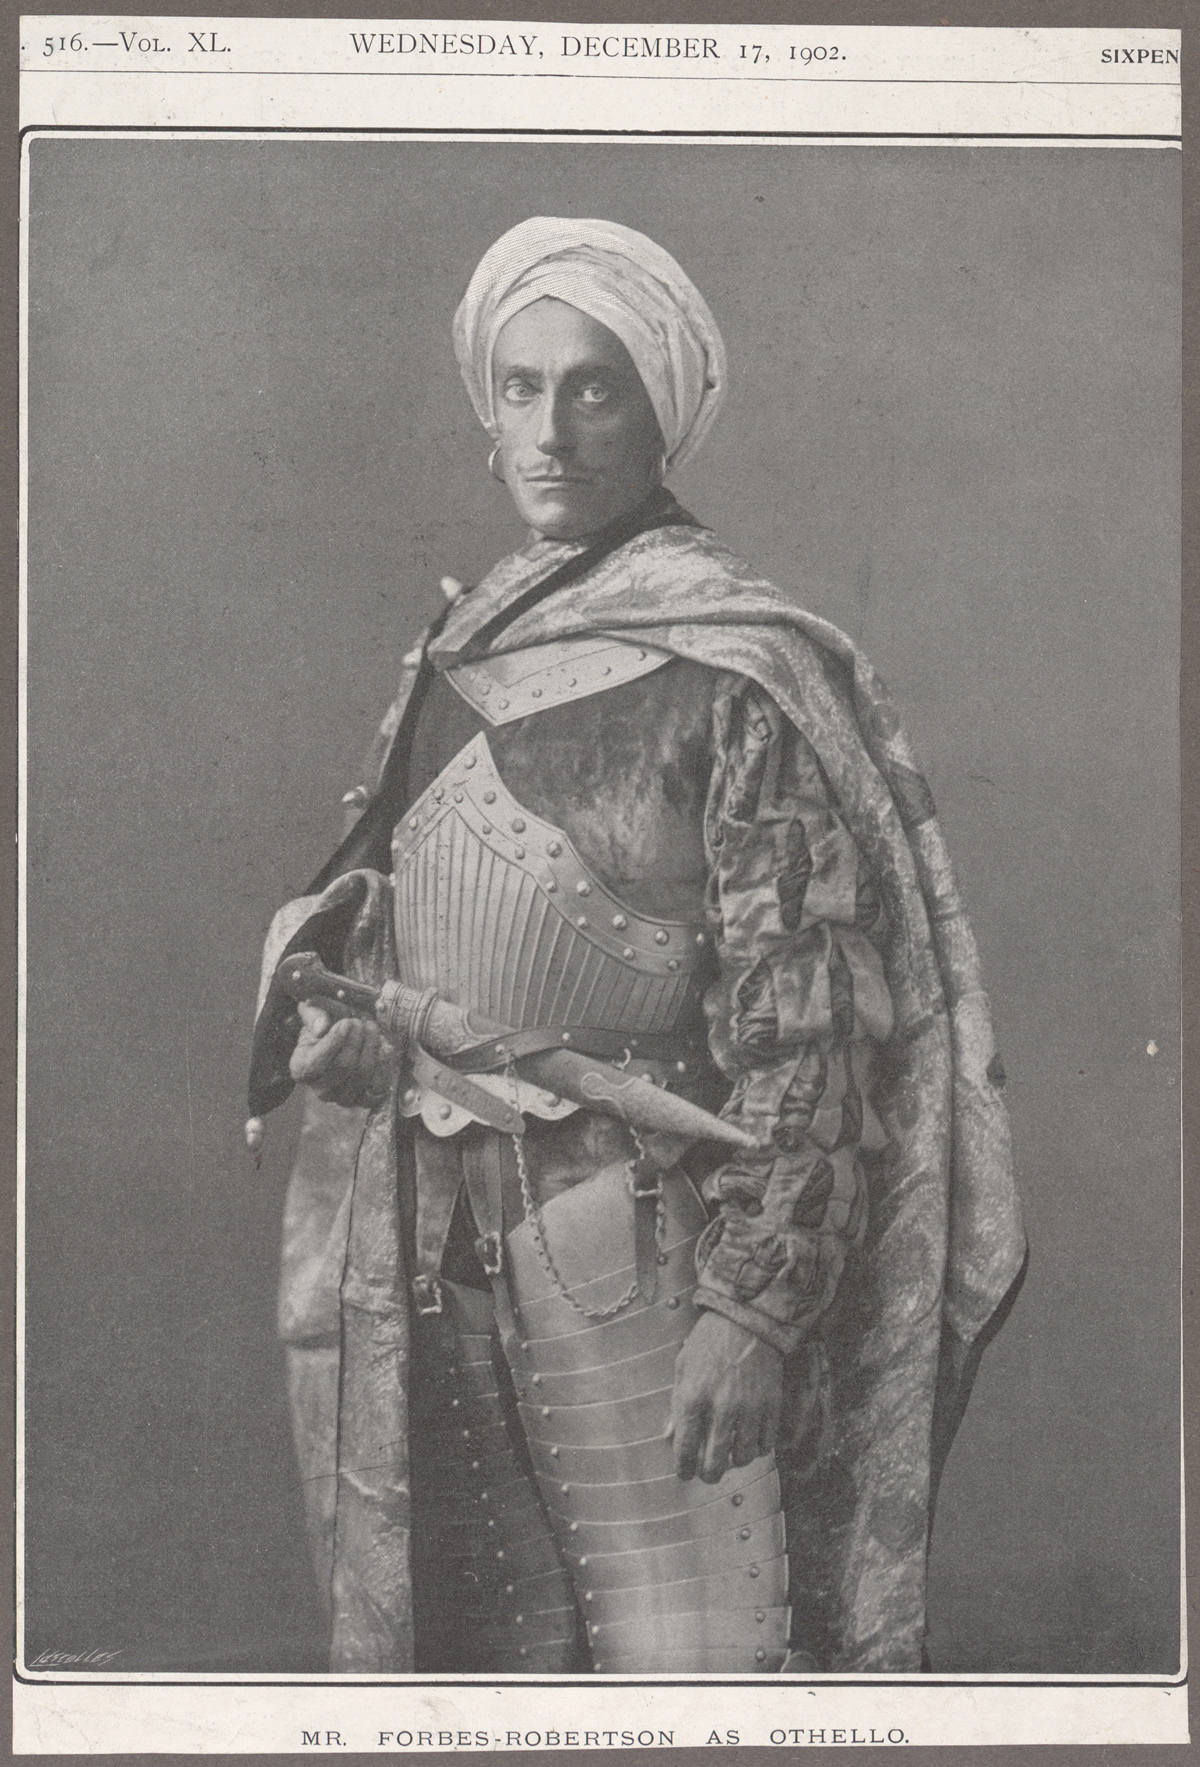 Clipping showing Johnston Forbes-Robertson in the role of Othello, 1902.